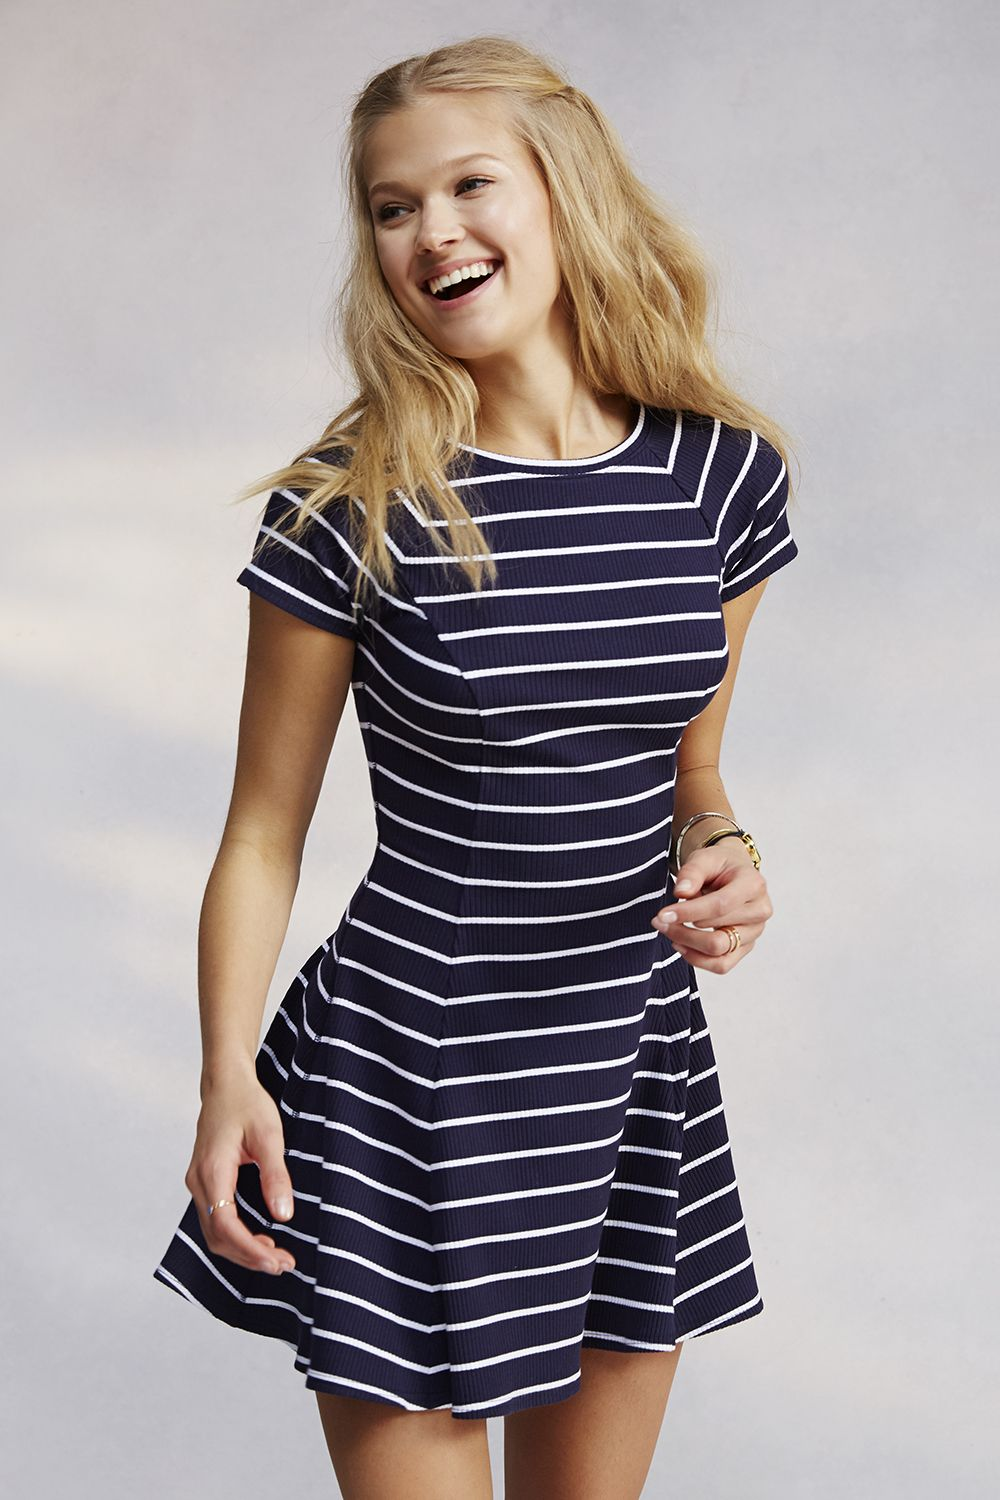 Stripes are back in. Yup...its a big deal now